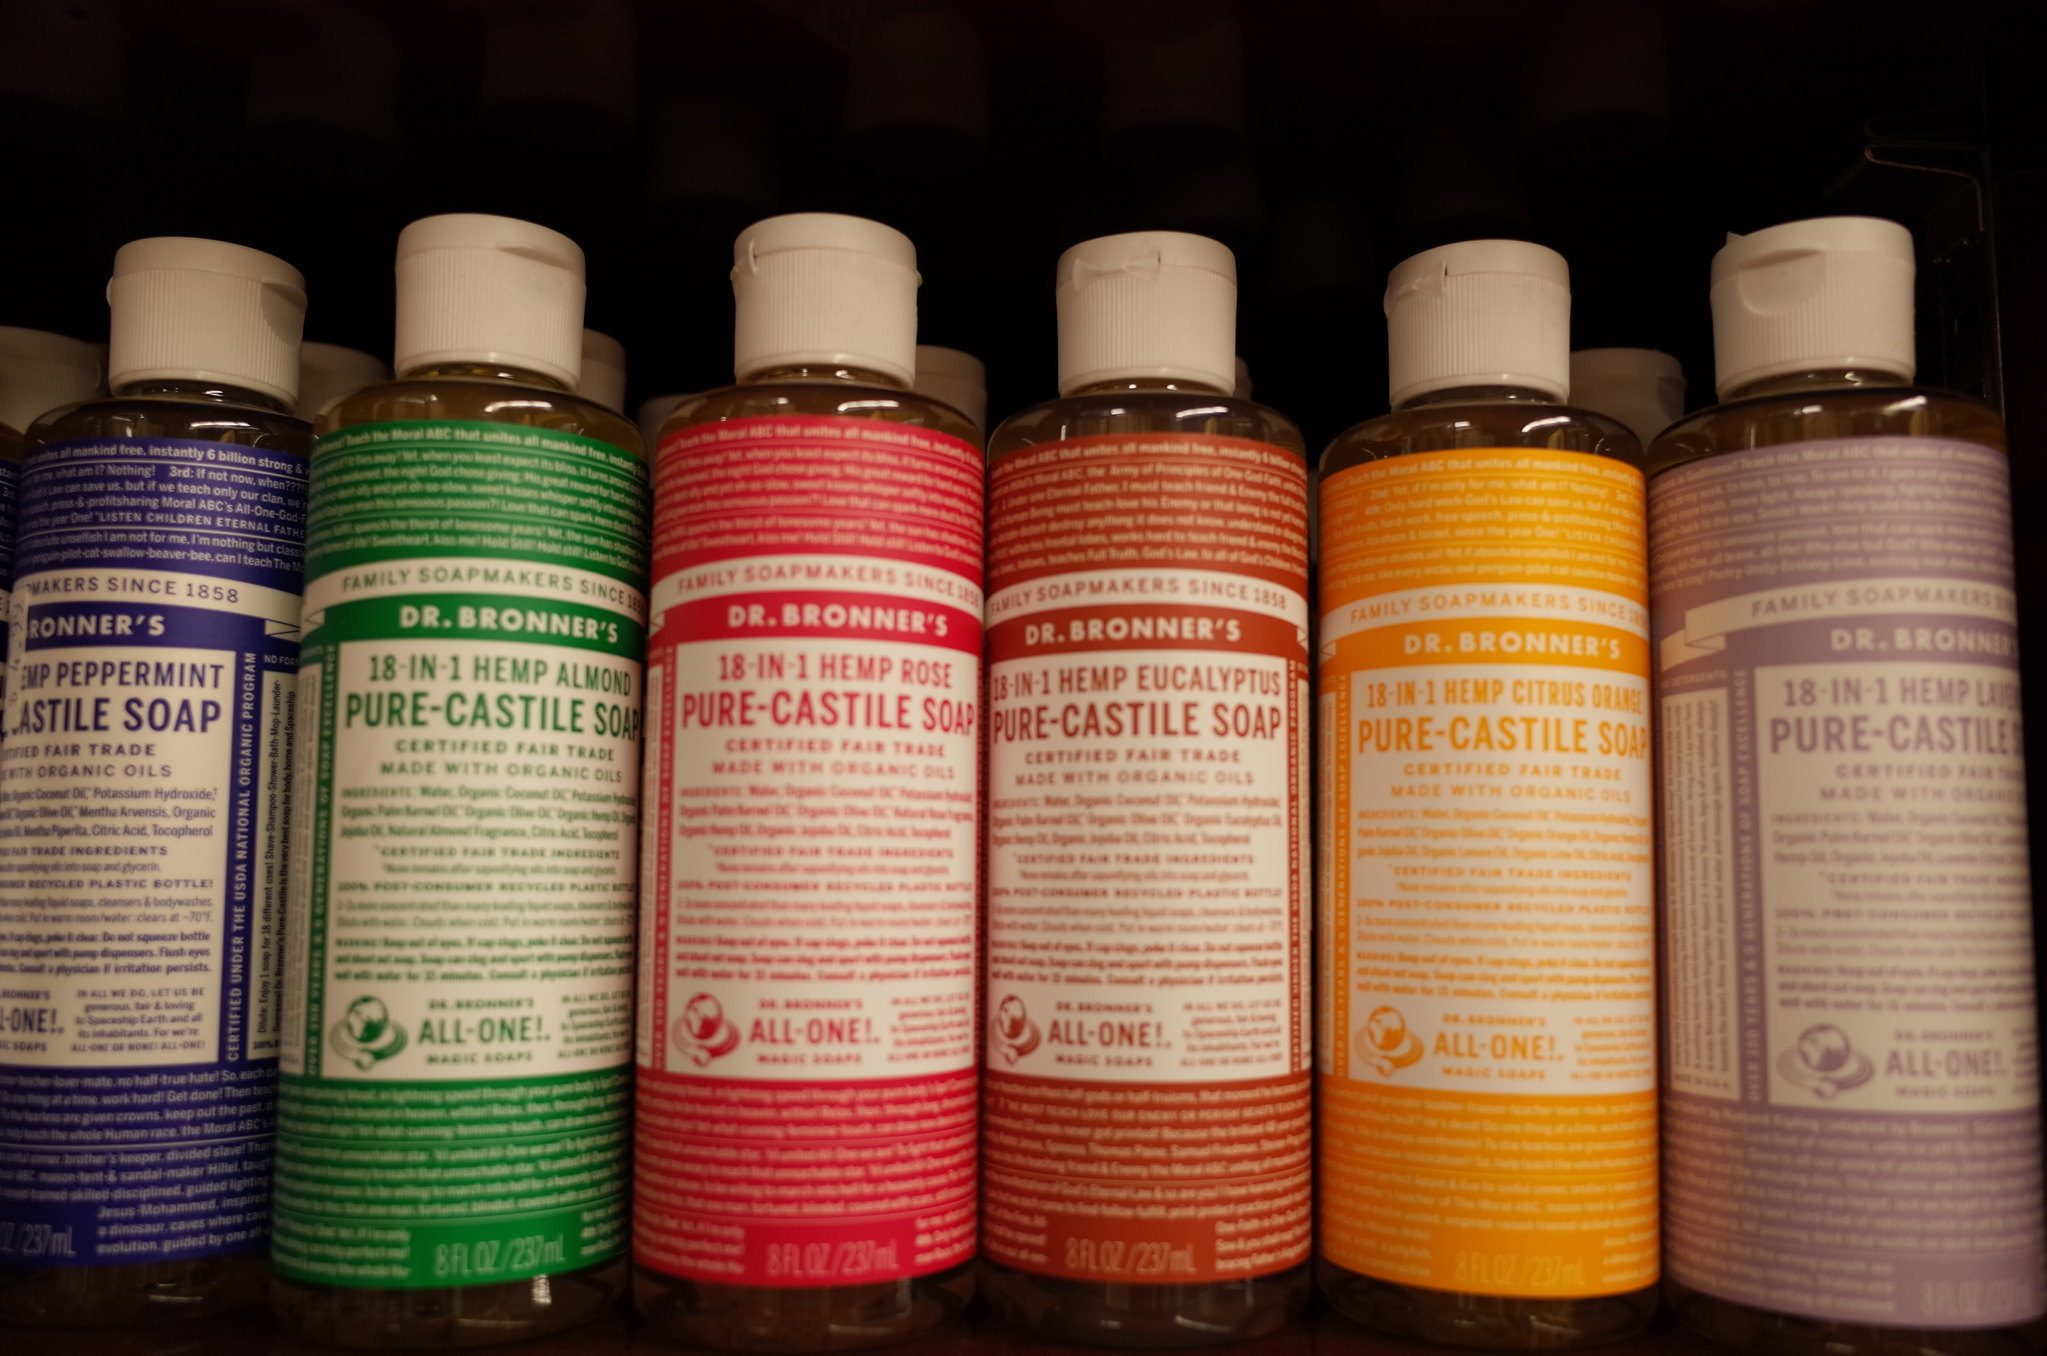 Dr. Bronner's is the best environmentally friendly soap for camping